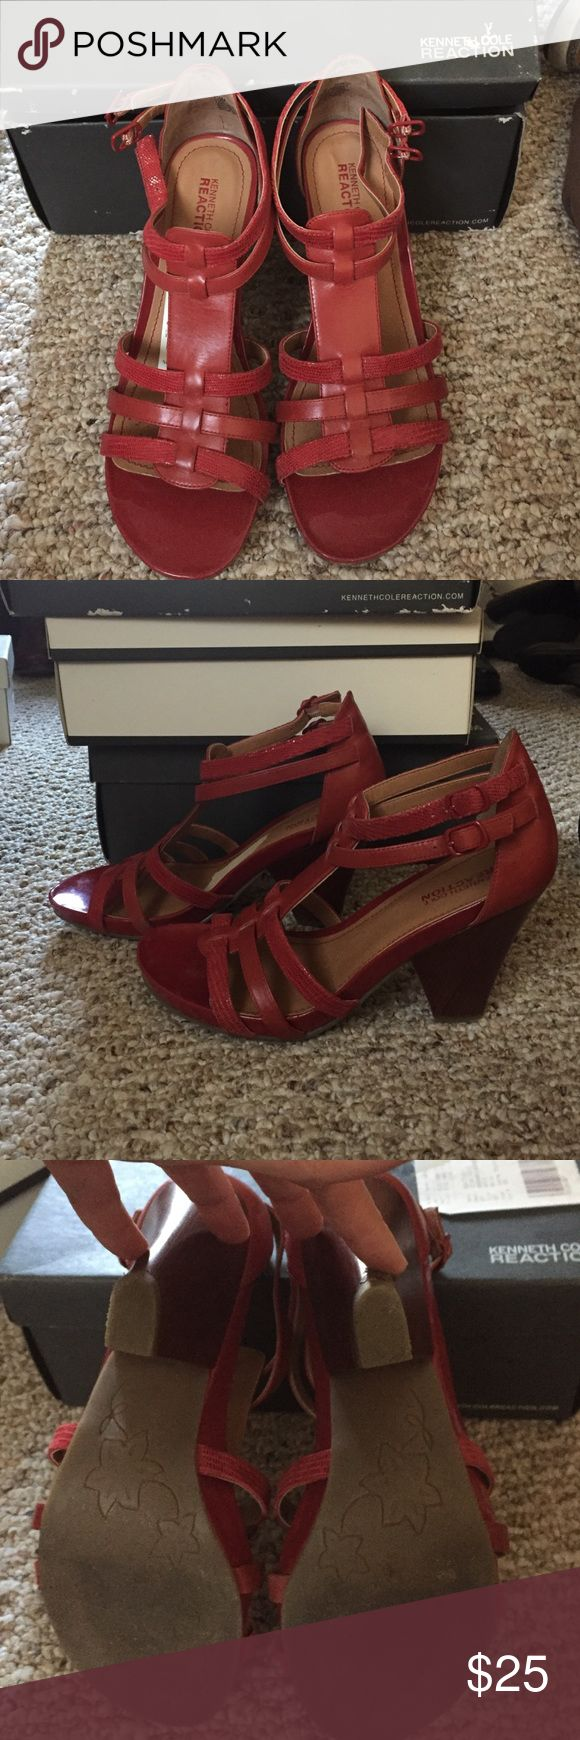 Kenneth Cole Reaction Red Heeled Sandals Only worn a few times, comfortable and will take you through every season. Kenneth Cole Reaction Shoes Sandals